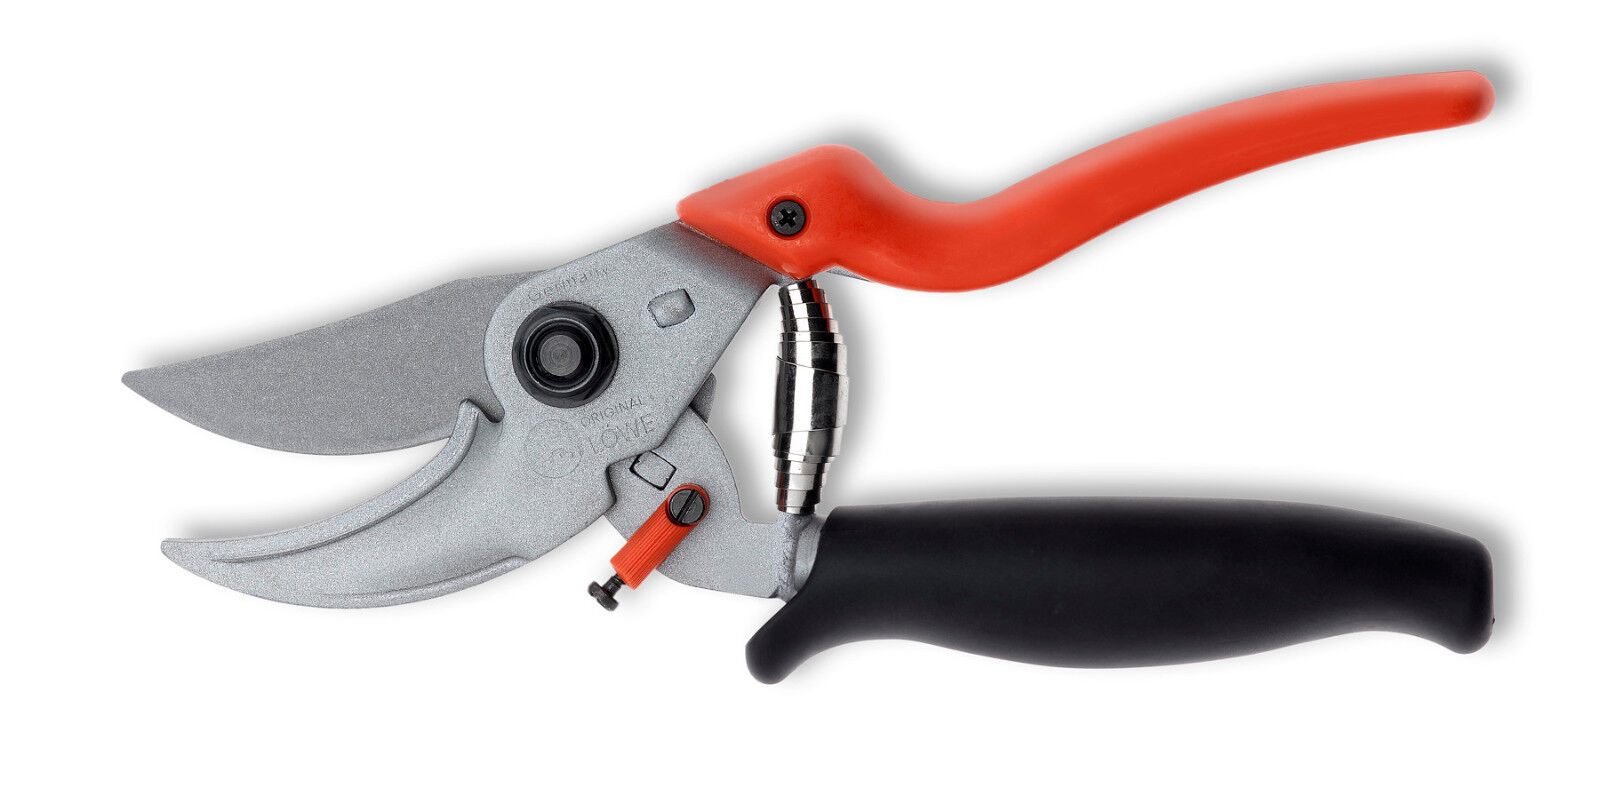 Lowe Bypass Pruning Secateurs With Rotating Handles 9109 For Sale